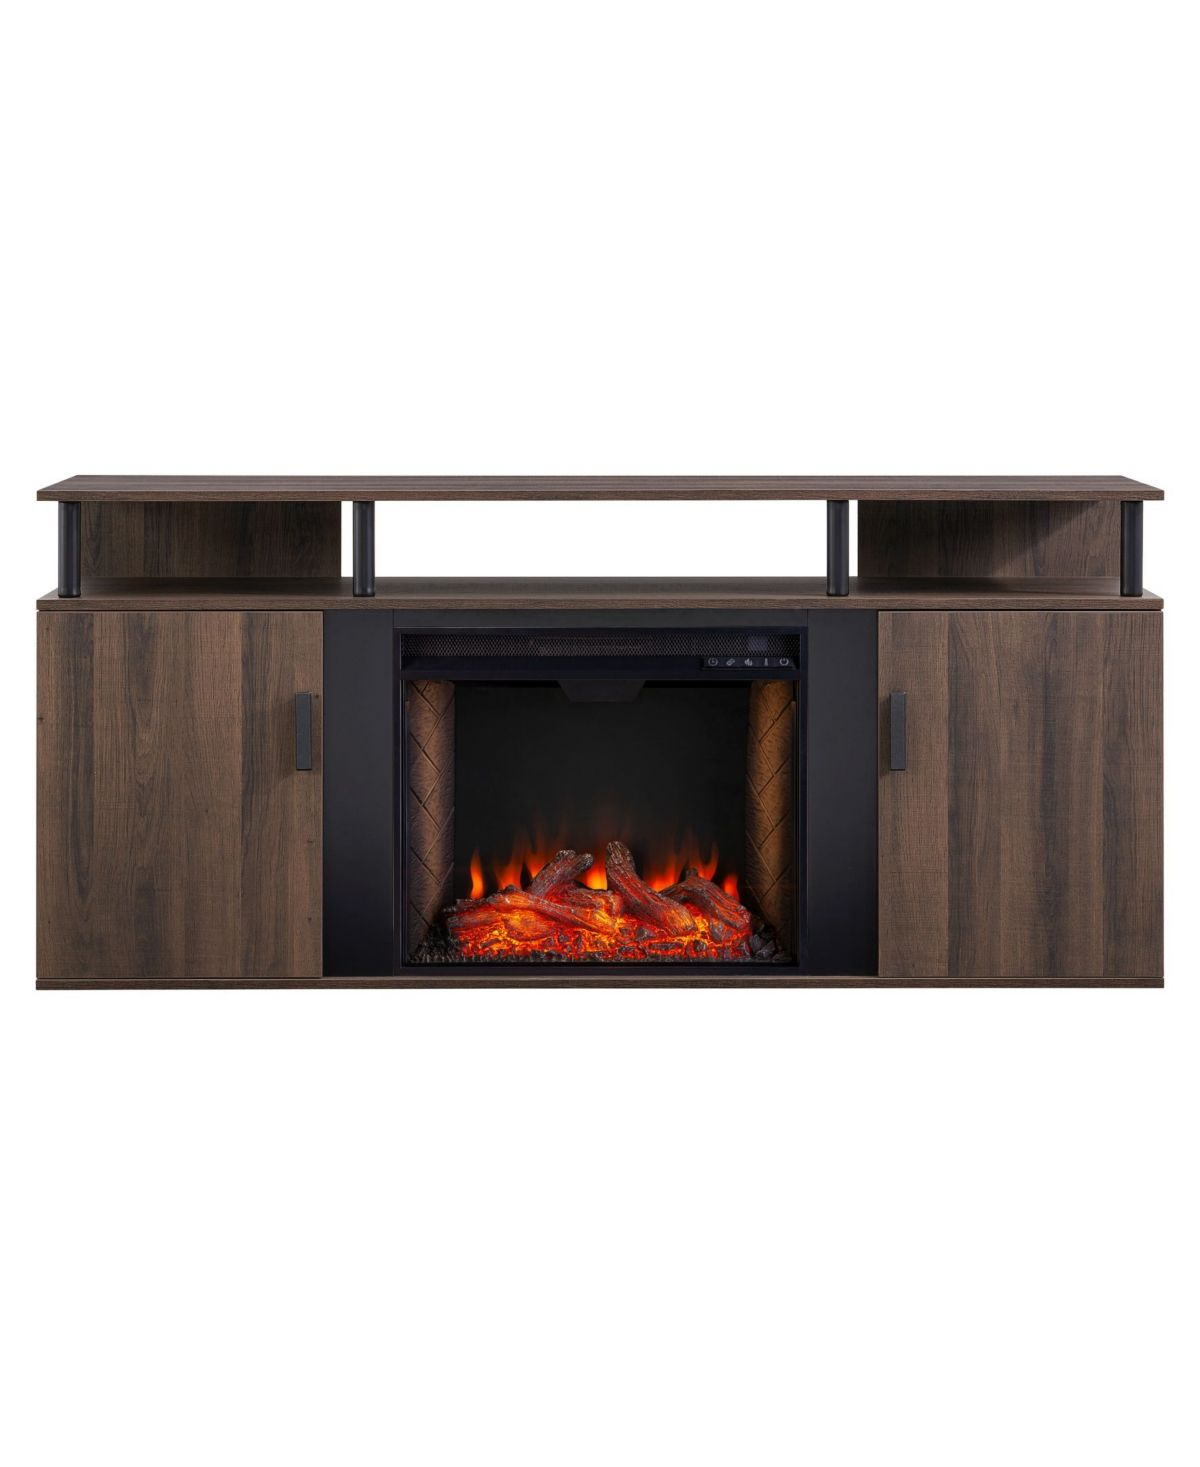 Southern Enterprises Teagan Alexa Enabled Electric Fireplace With